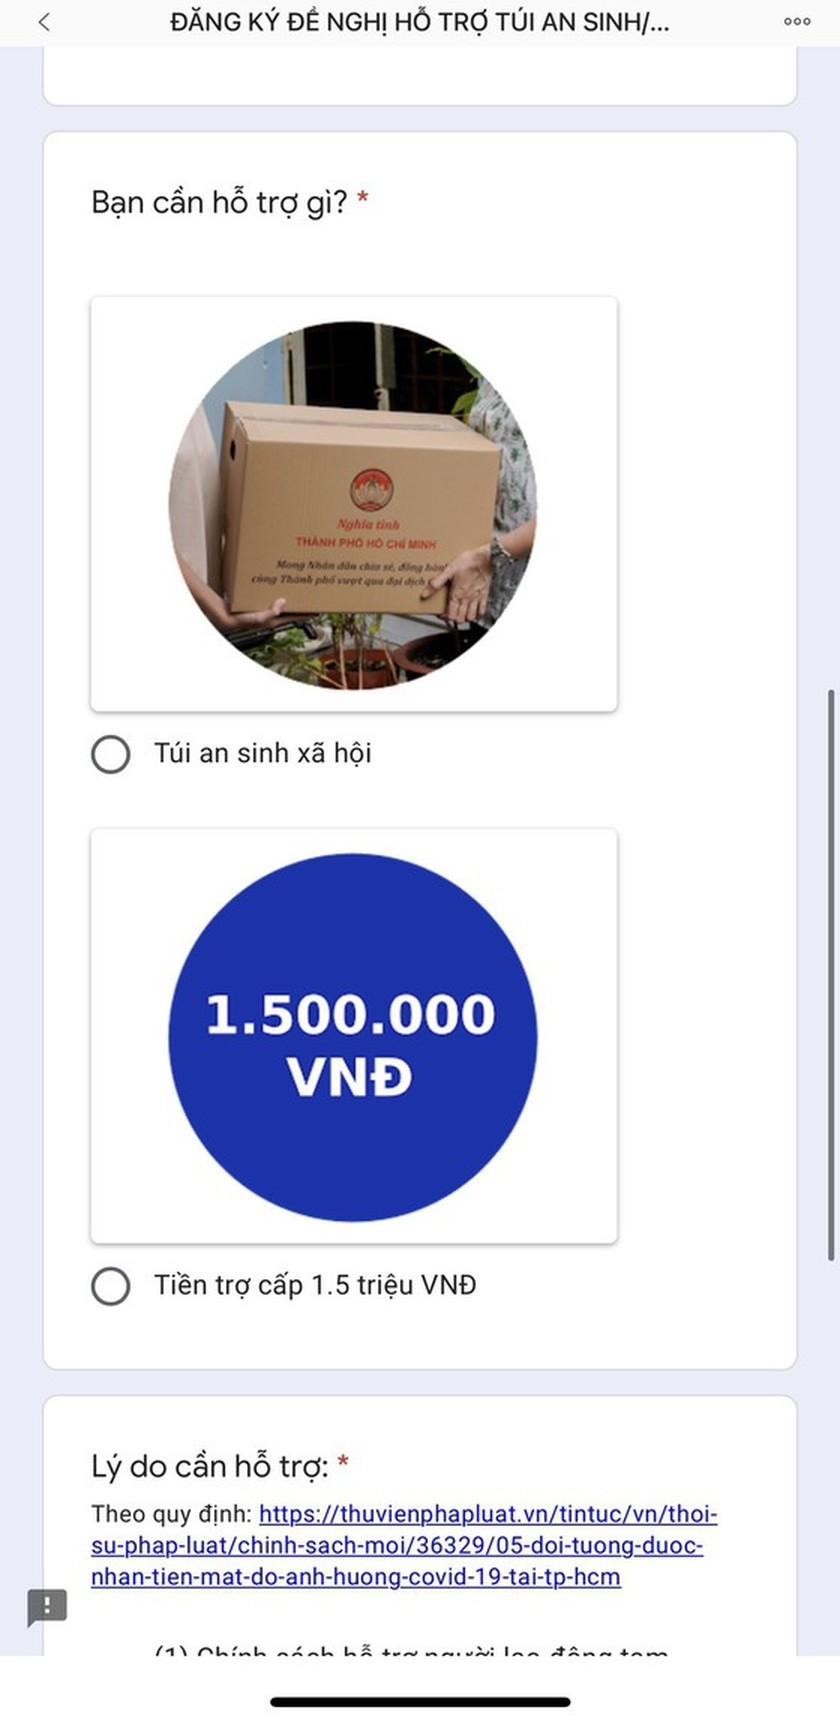 HCMC's needy people can ask for help through online registration portal ảnh 2